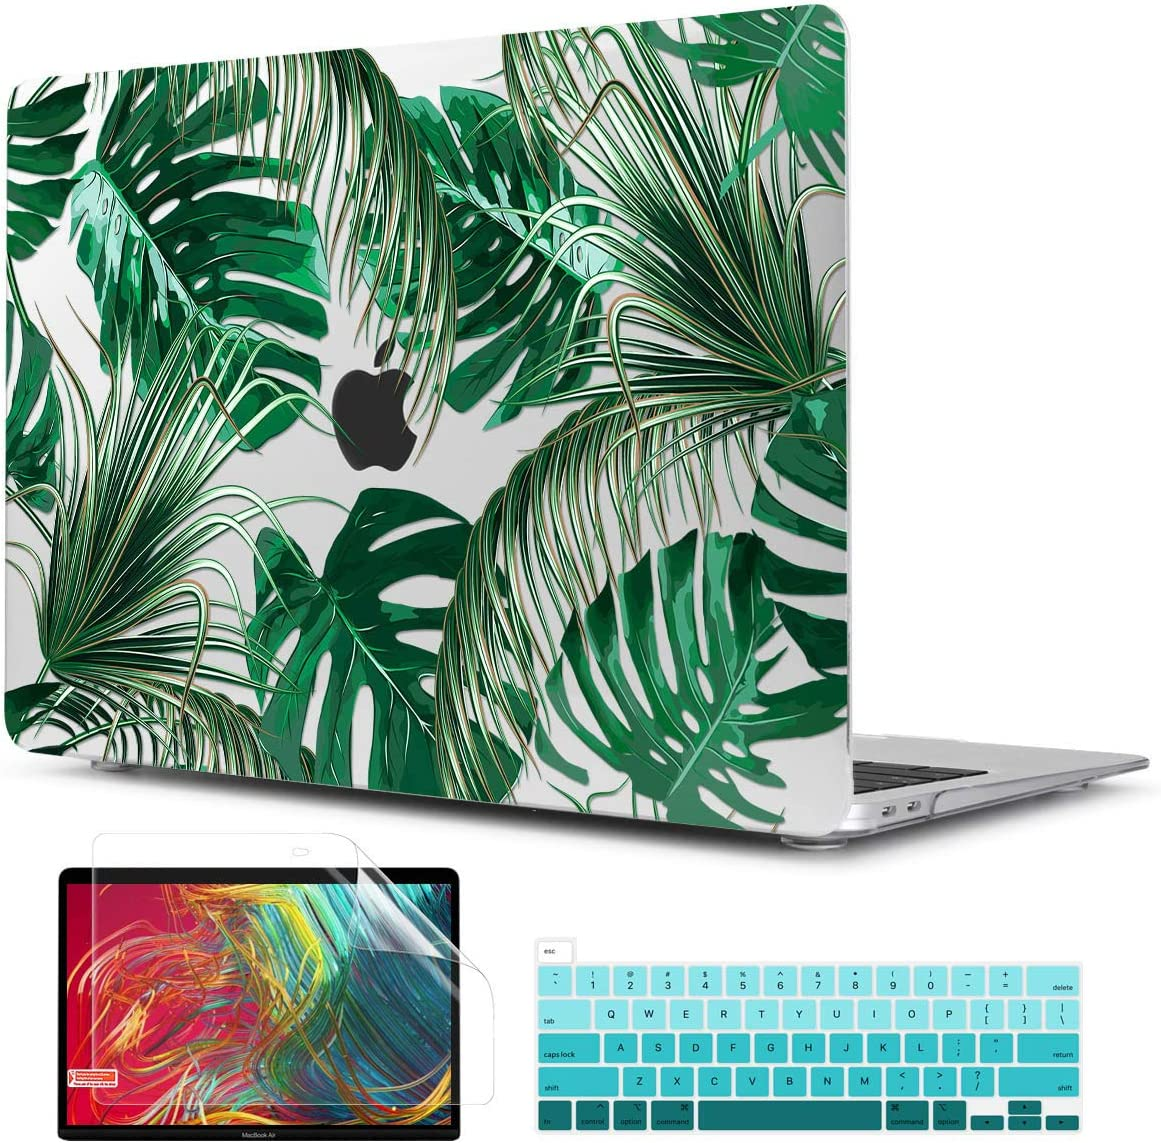 TwoL Tropical Palm Leaves Hard Shell Case Keyboard Cover Screen Protector for 2020 MacBook Pro 13 inch Touch Bar & Touch ID Model A2251 A2289